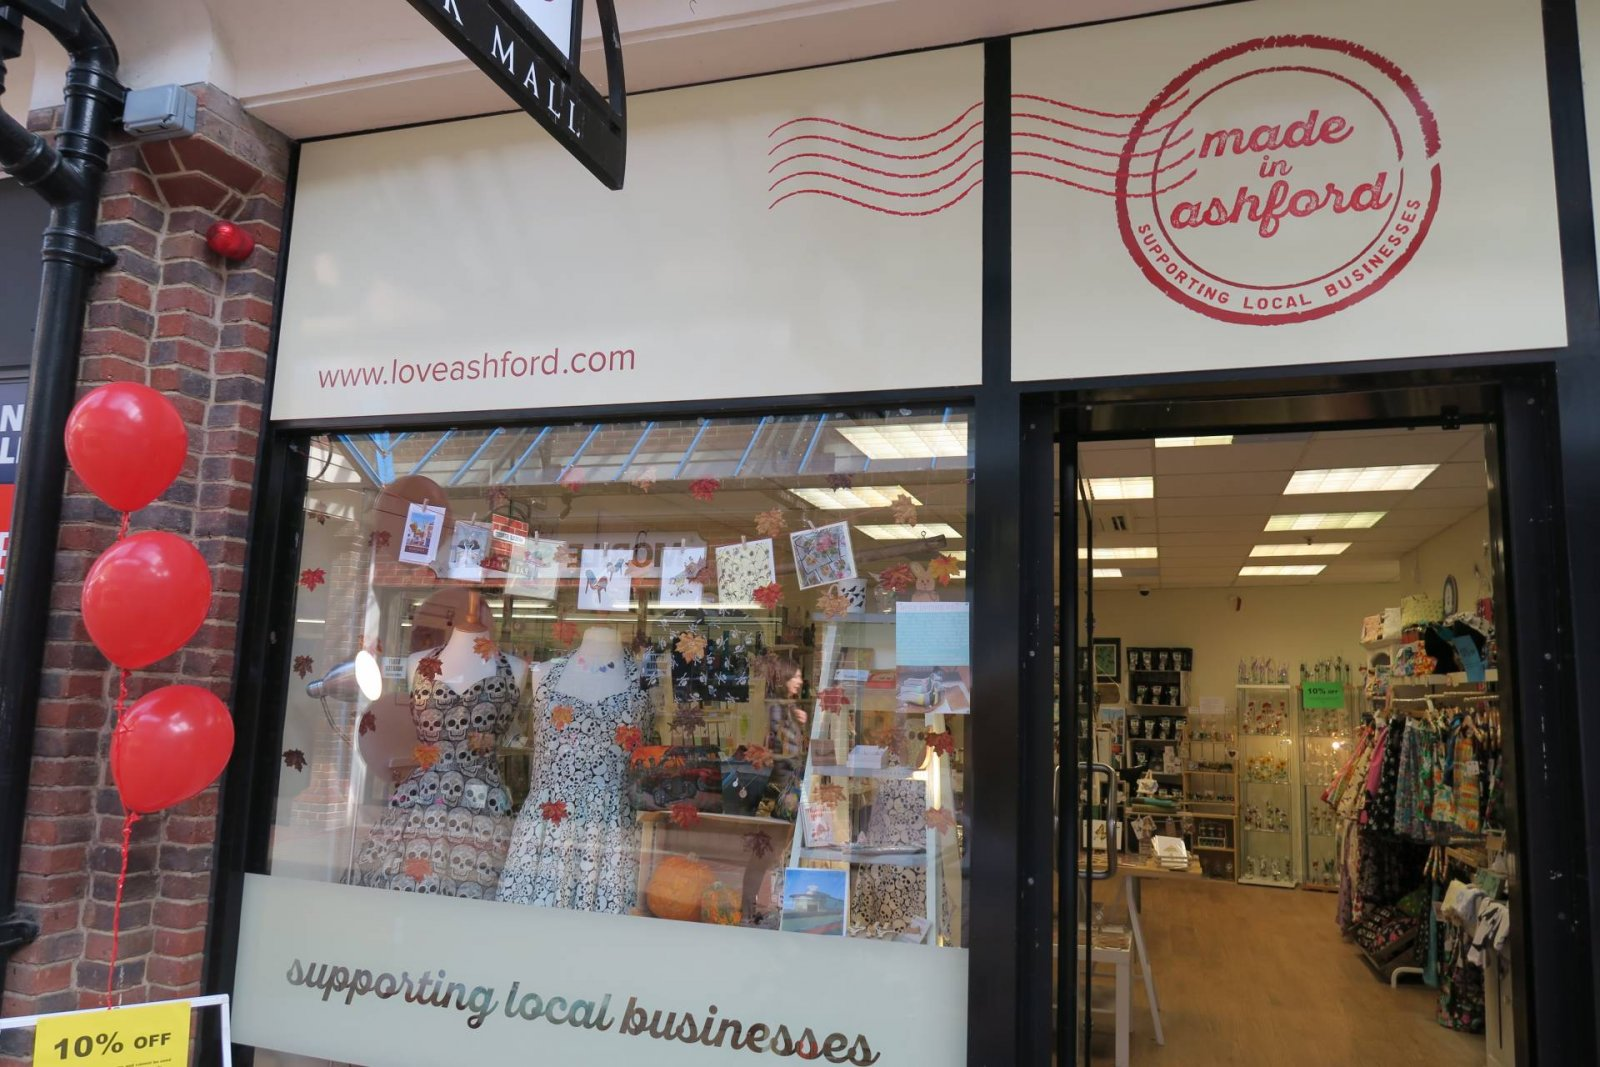 My favourite local small businesses